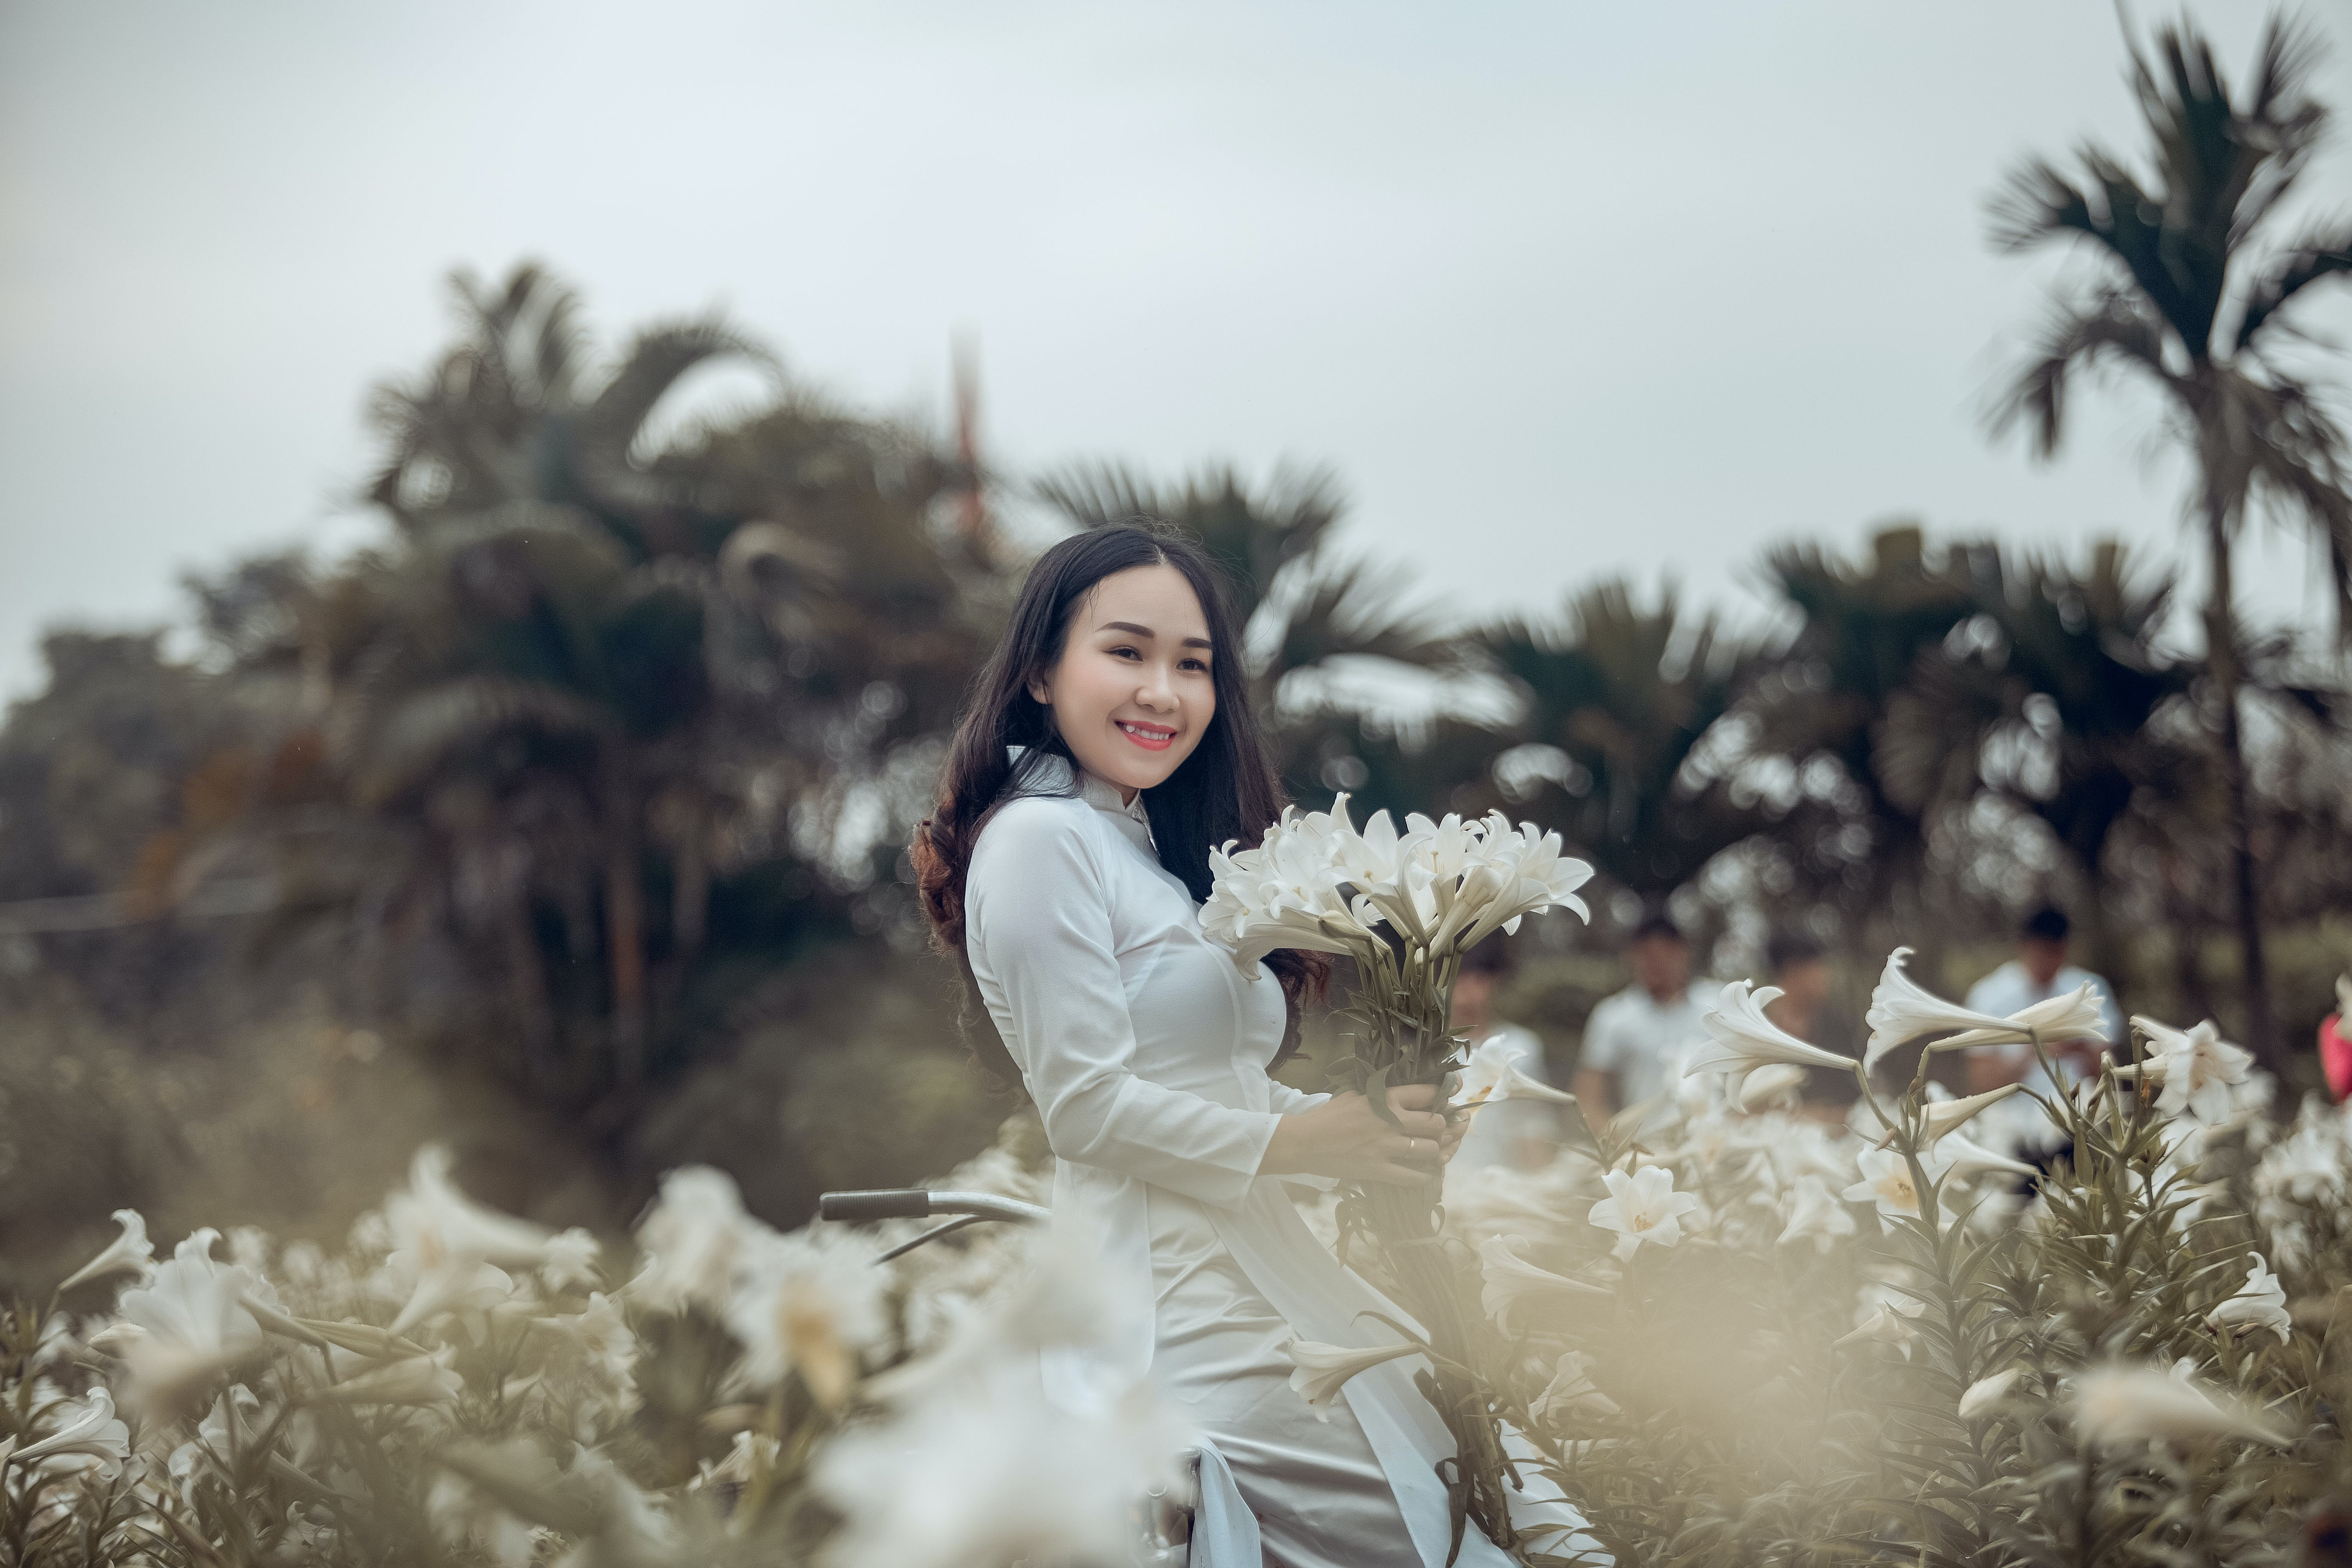 Woman in White Dress Standing and Holding White Petaled Flower and Smiling